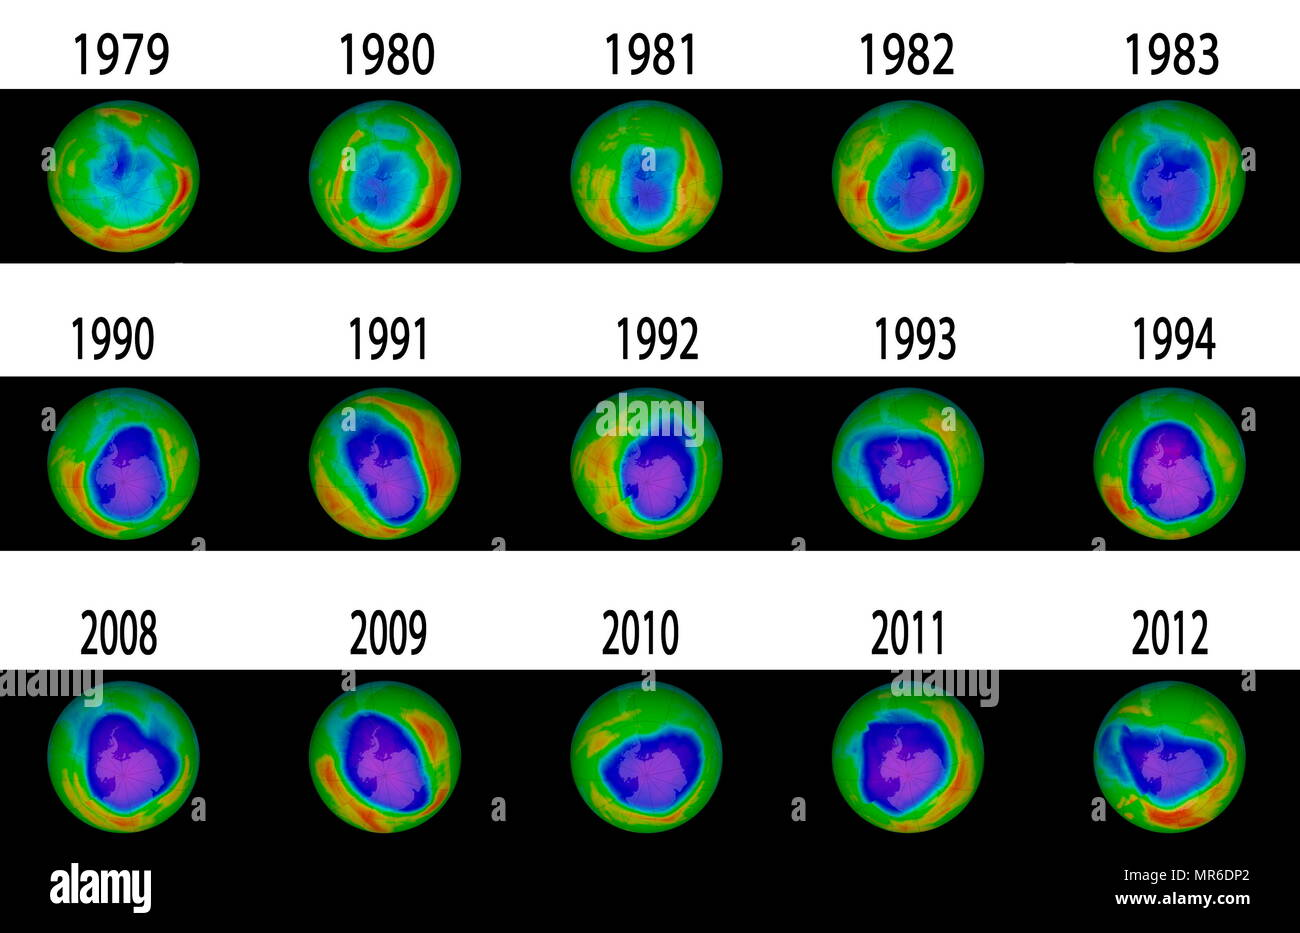 Composite image showing the Antarctic Ozone Hole from 1979-2012 - Stock Image